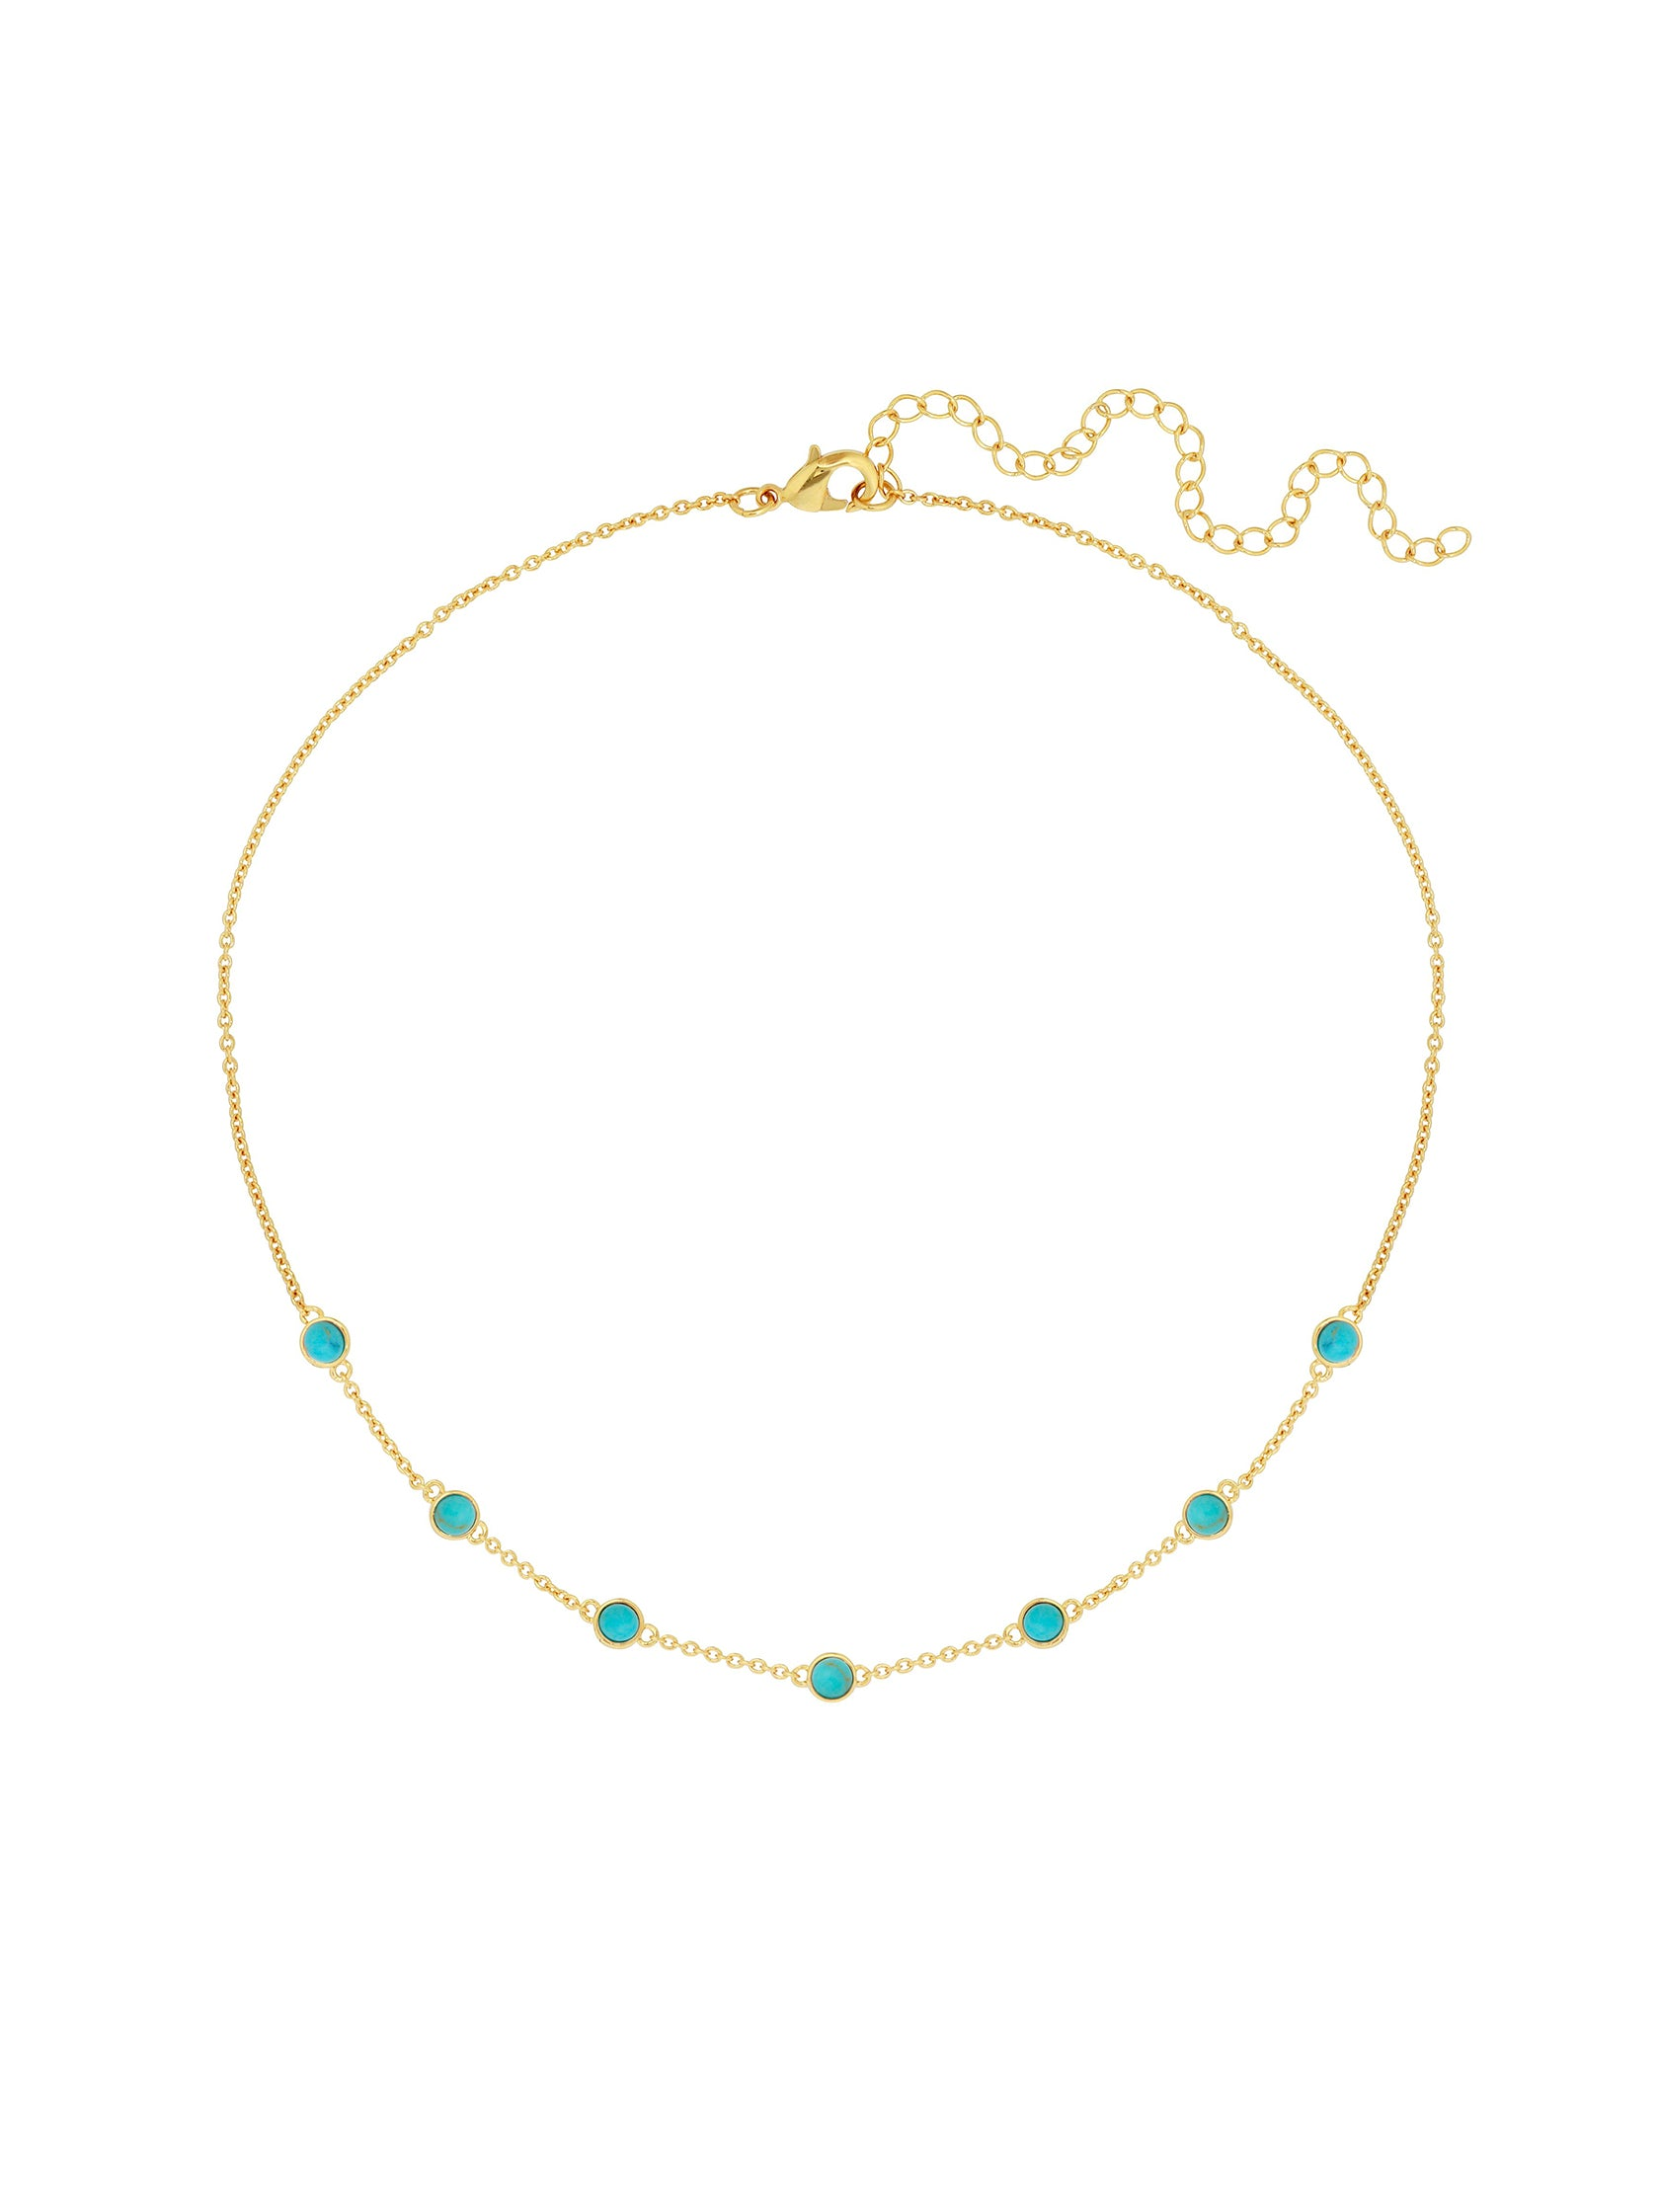 Women outfit in a necklace rental from Five and Two called Elizabeth Choker Necklace